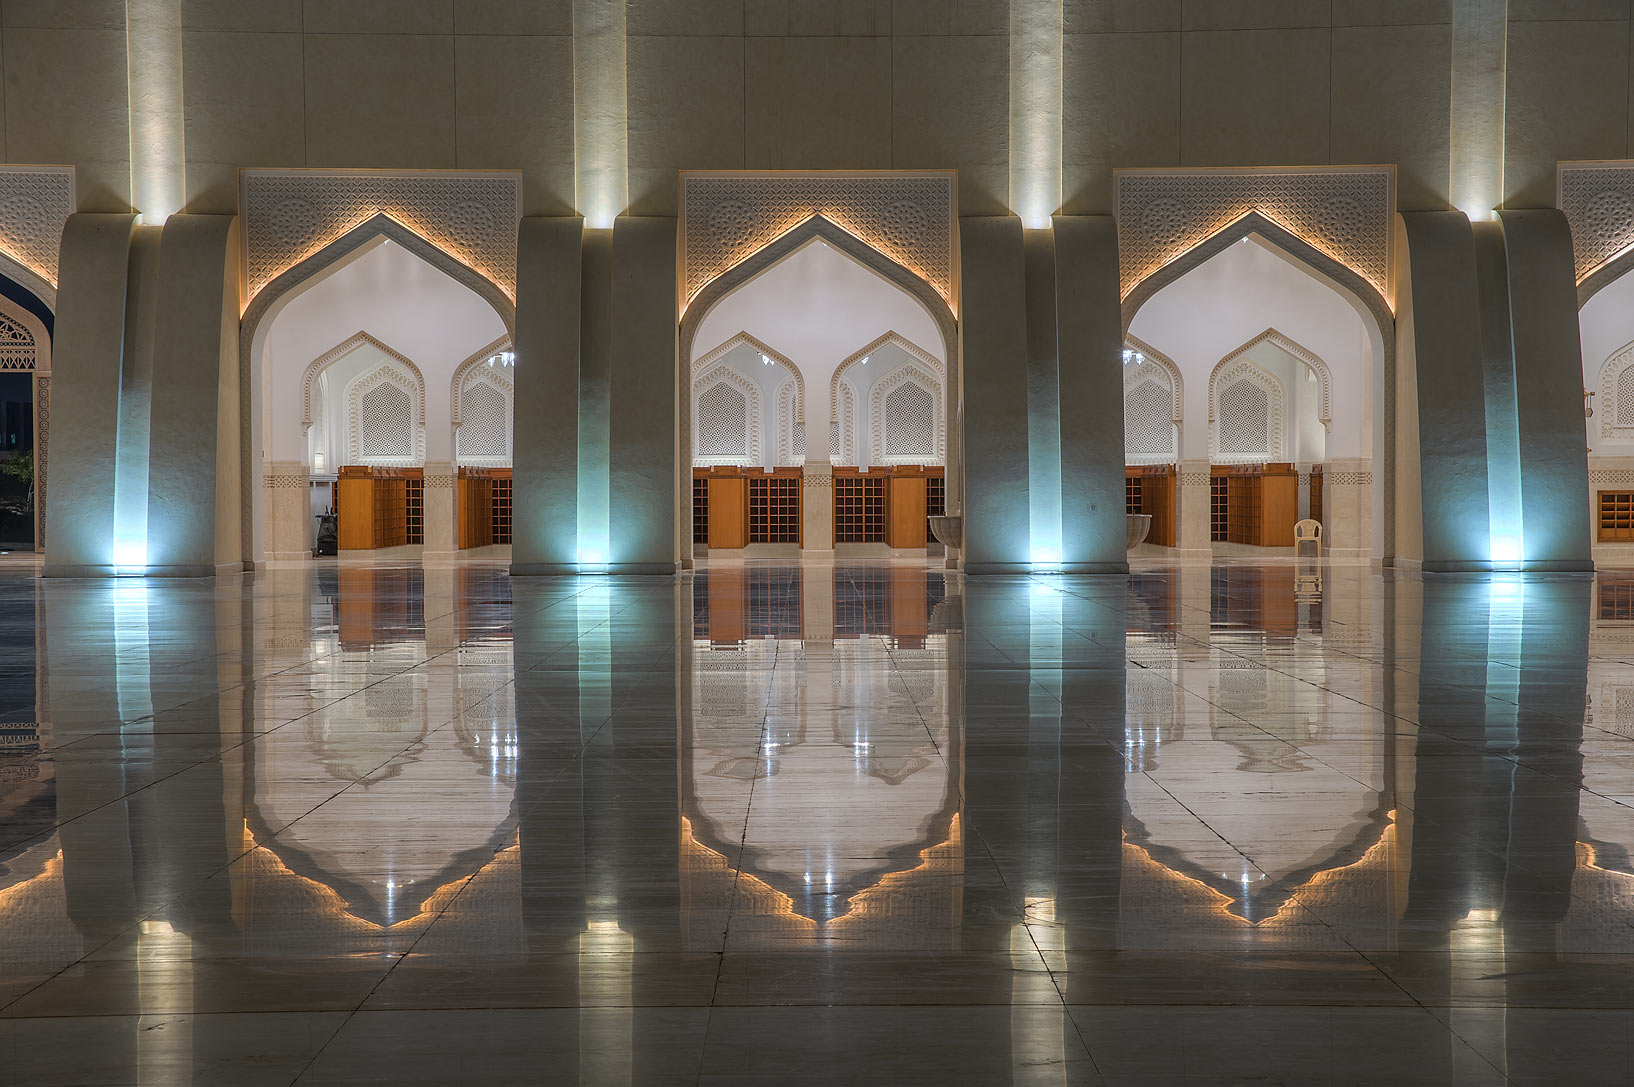 Arched gates of a courtyard of State Mosque...Ibn Abdul Wahhab Mosque). Doha, Qatar